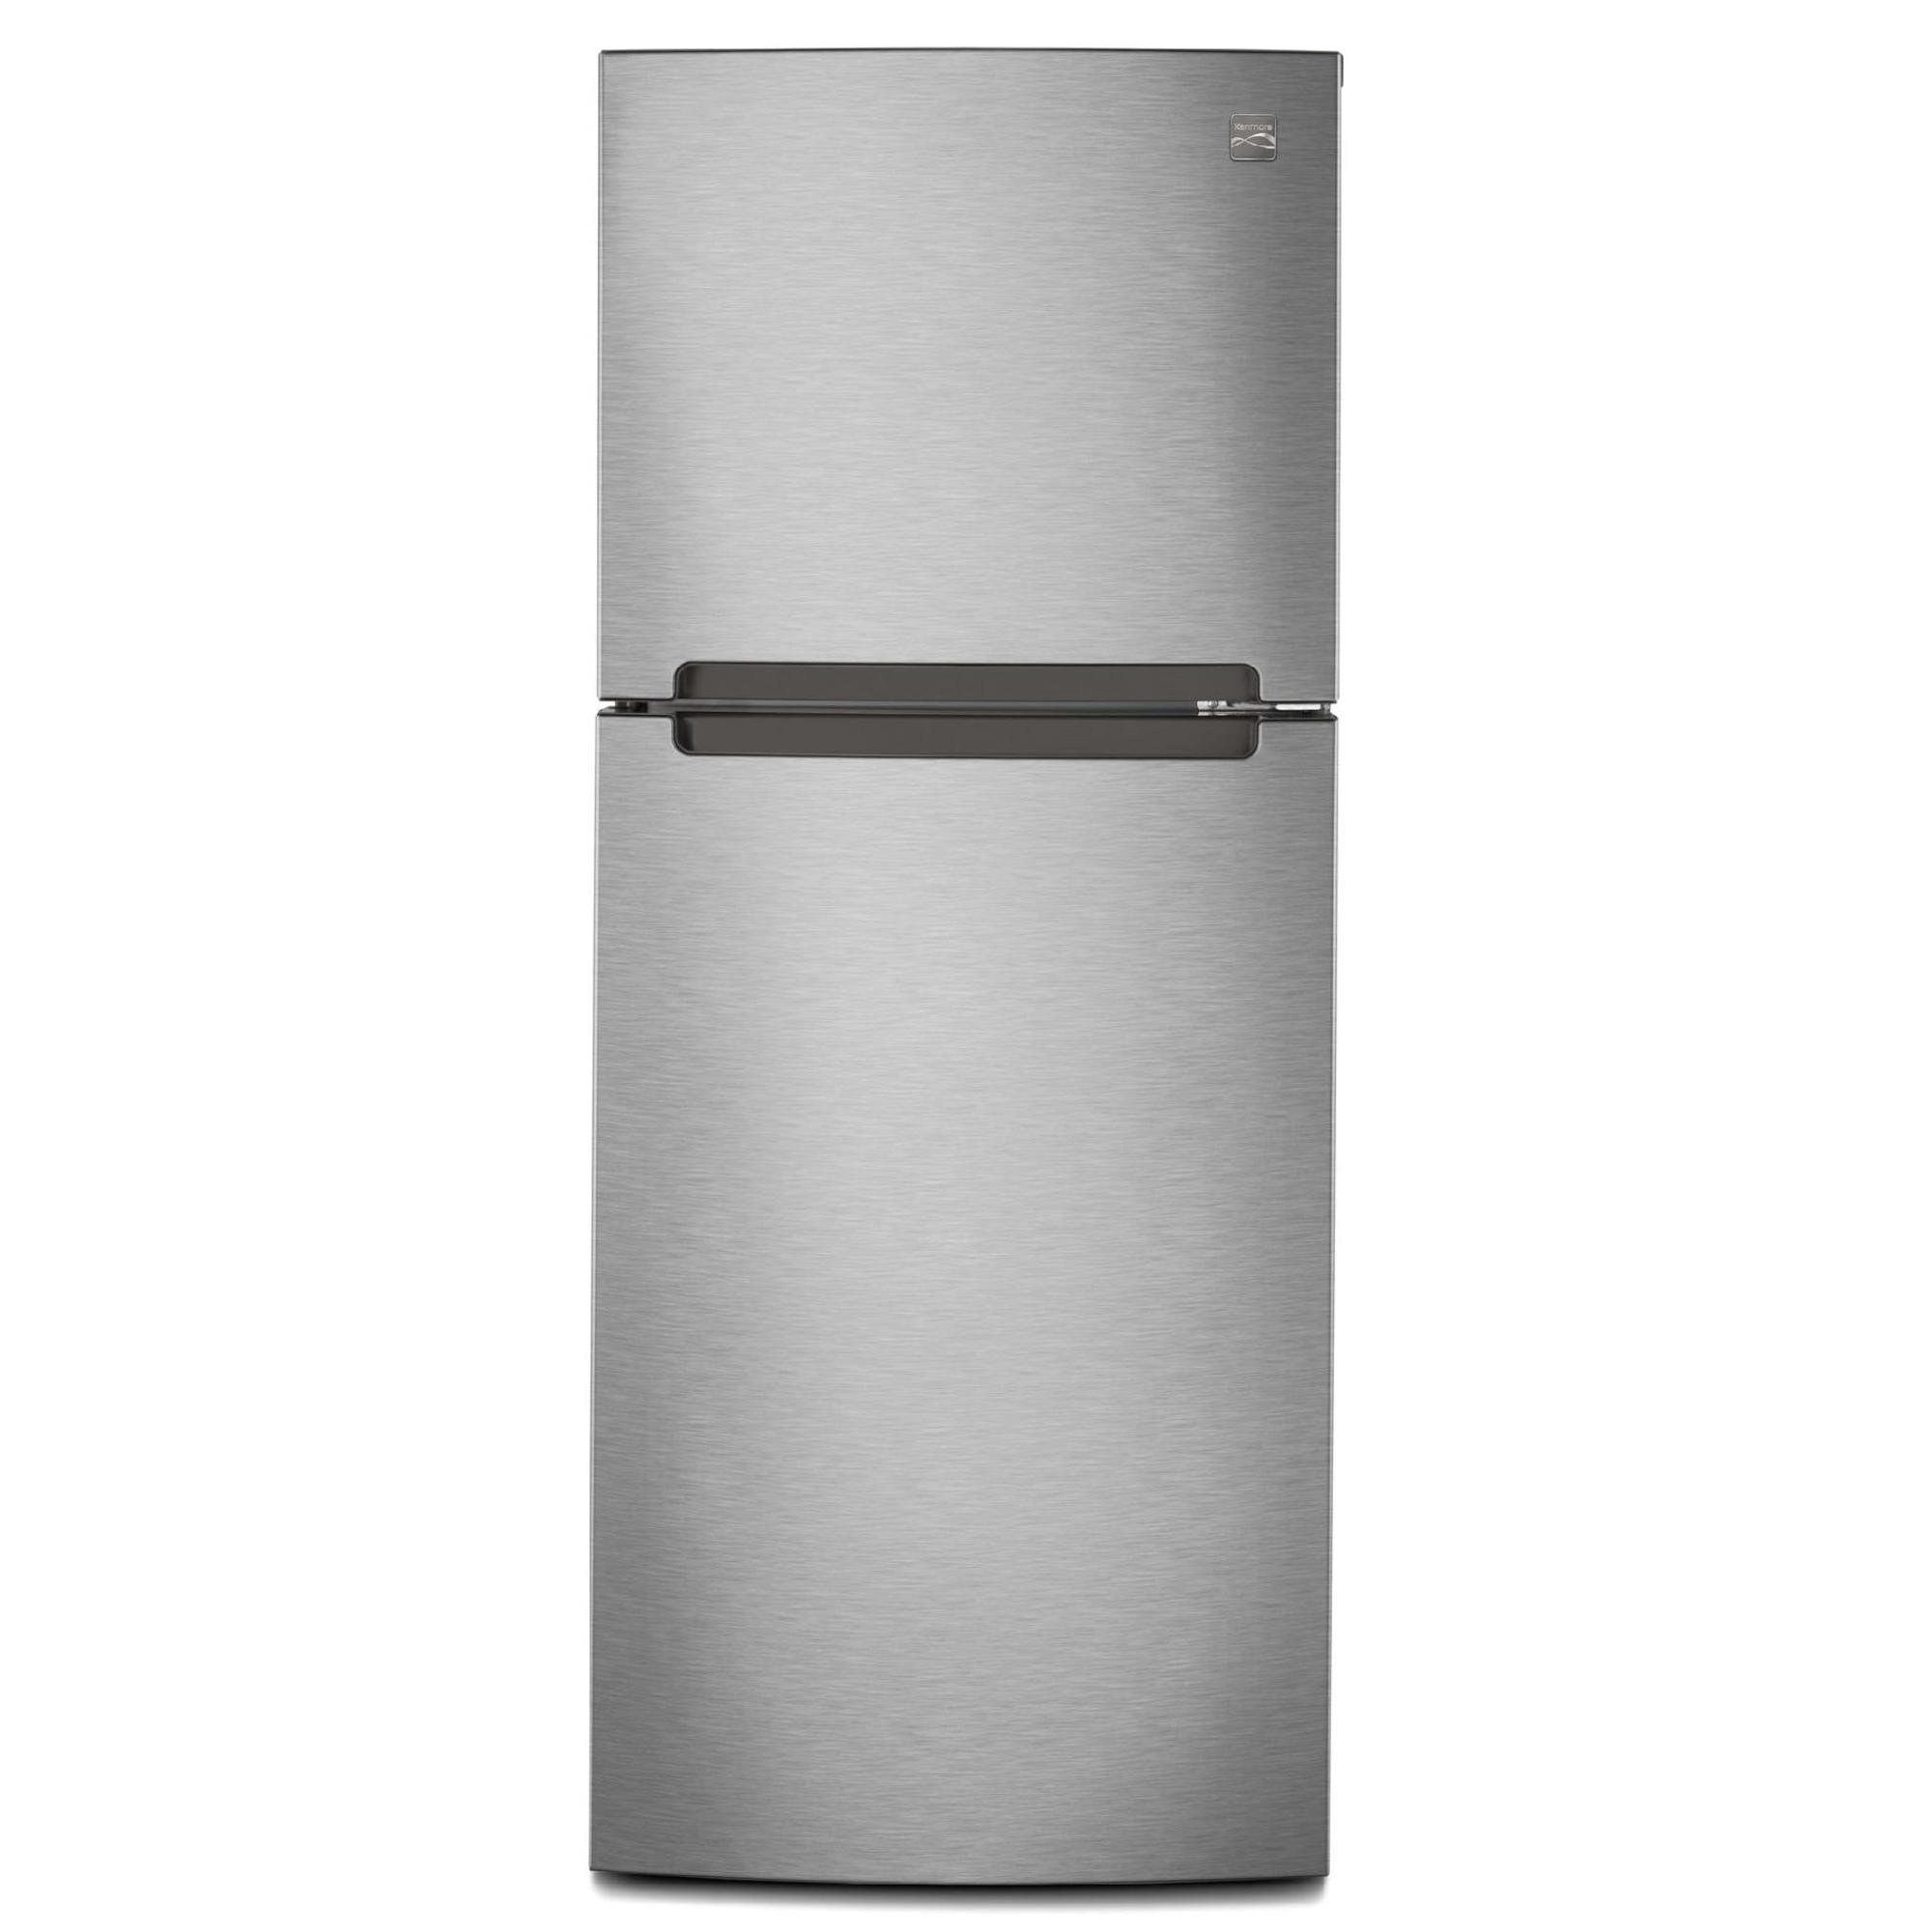 Sears Appliances Tools Apparel And More From Craftsman Kenmore Diehard And Other Leading Brands Top Freezer Refrigerator Refrigerator Compact Fridge